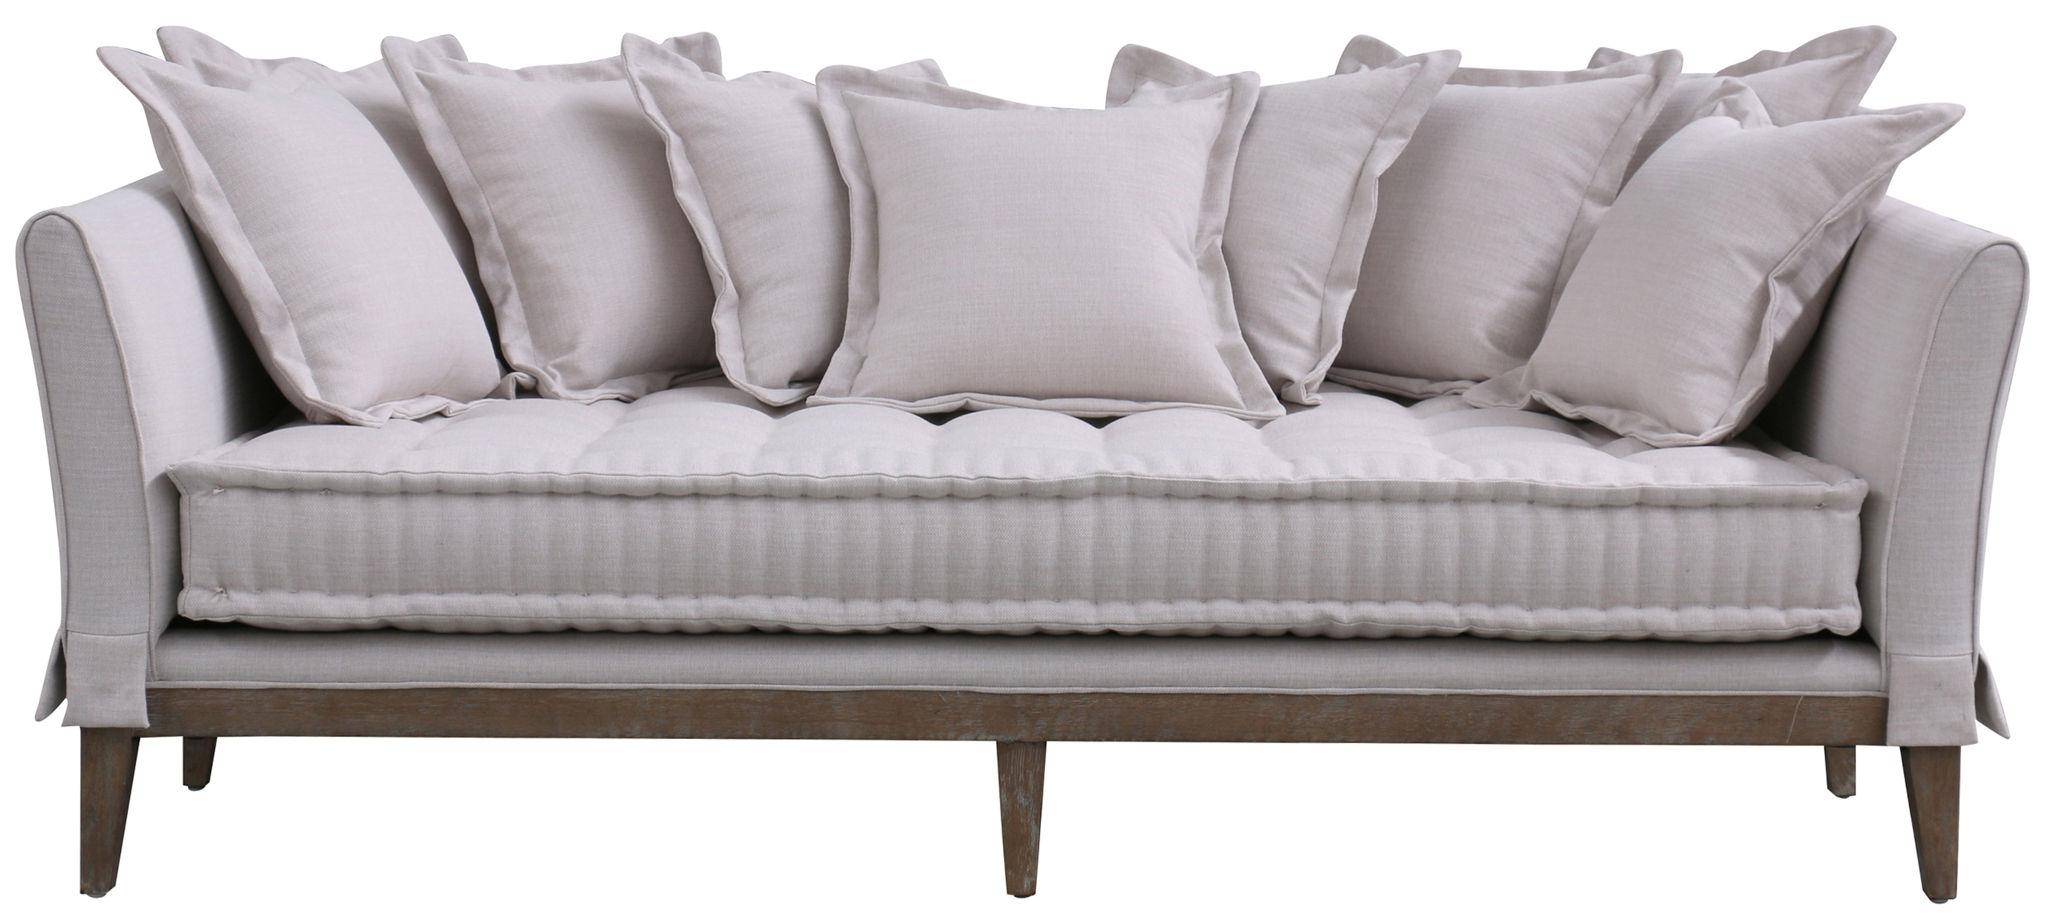 Day Beds For Girls That Are Pink – Day Beds For Girlsday Beds For With Regard To Sofa Day Beds (View 11 of 20)